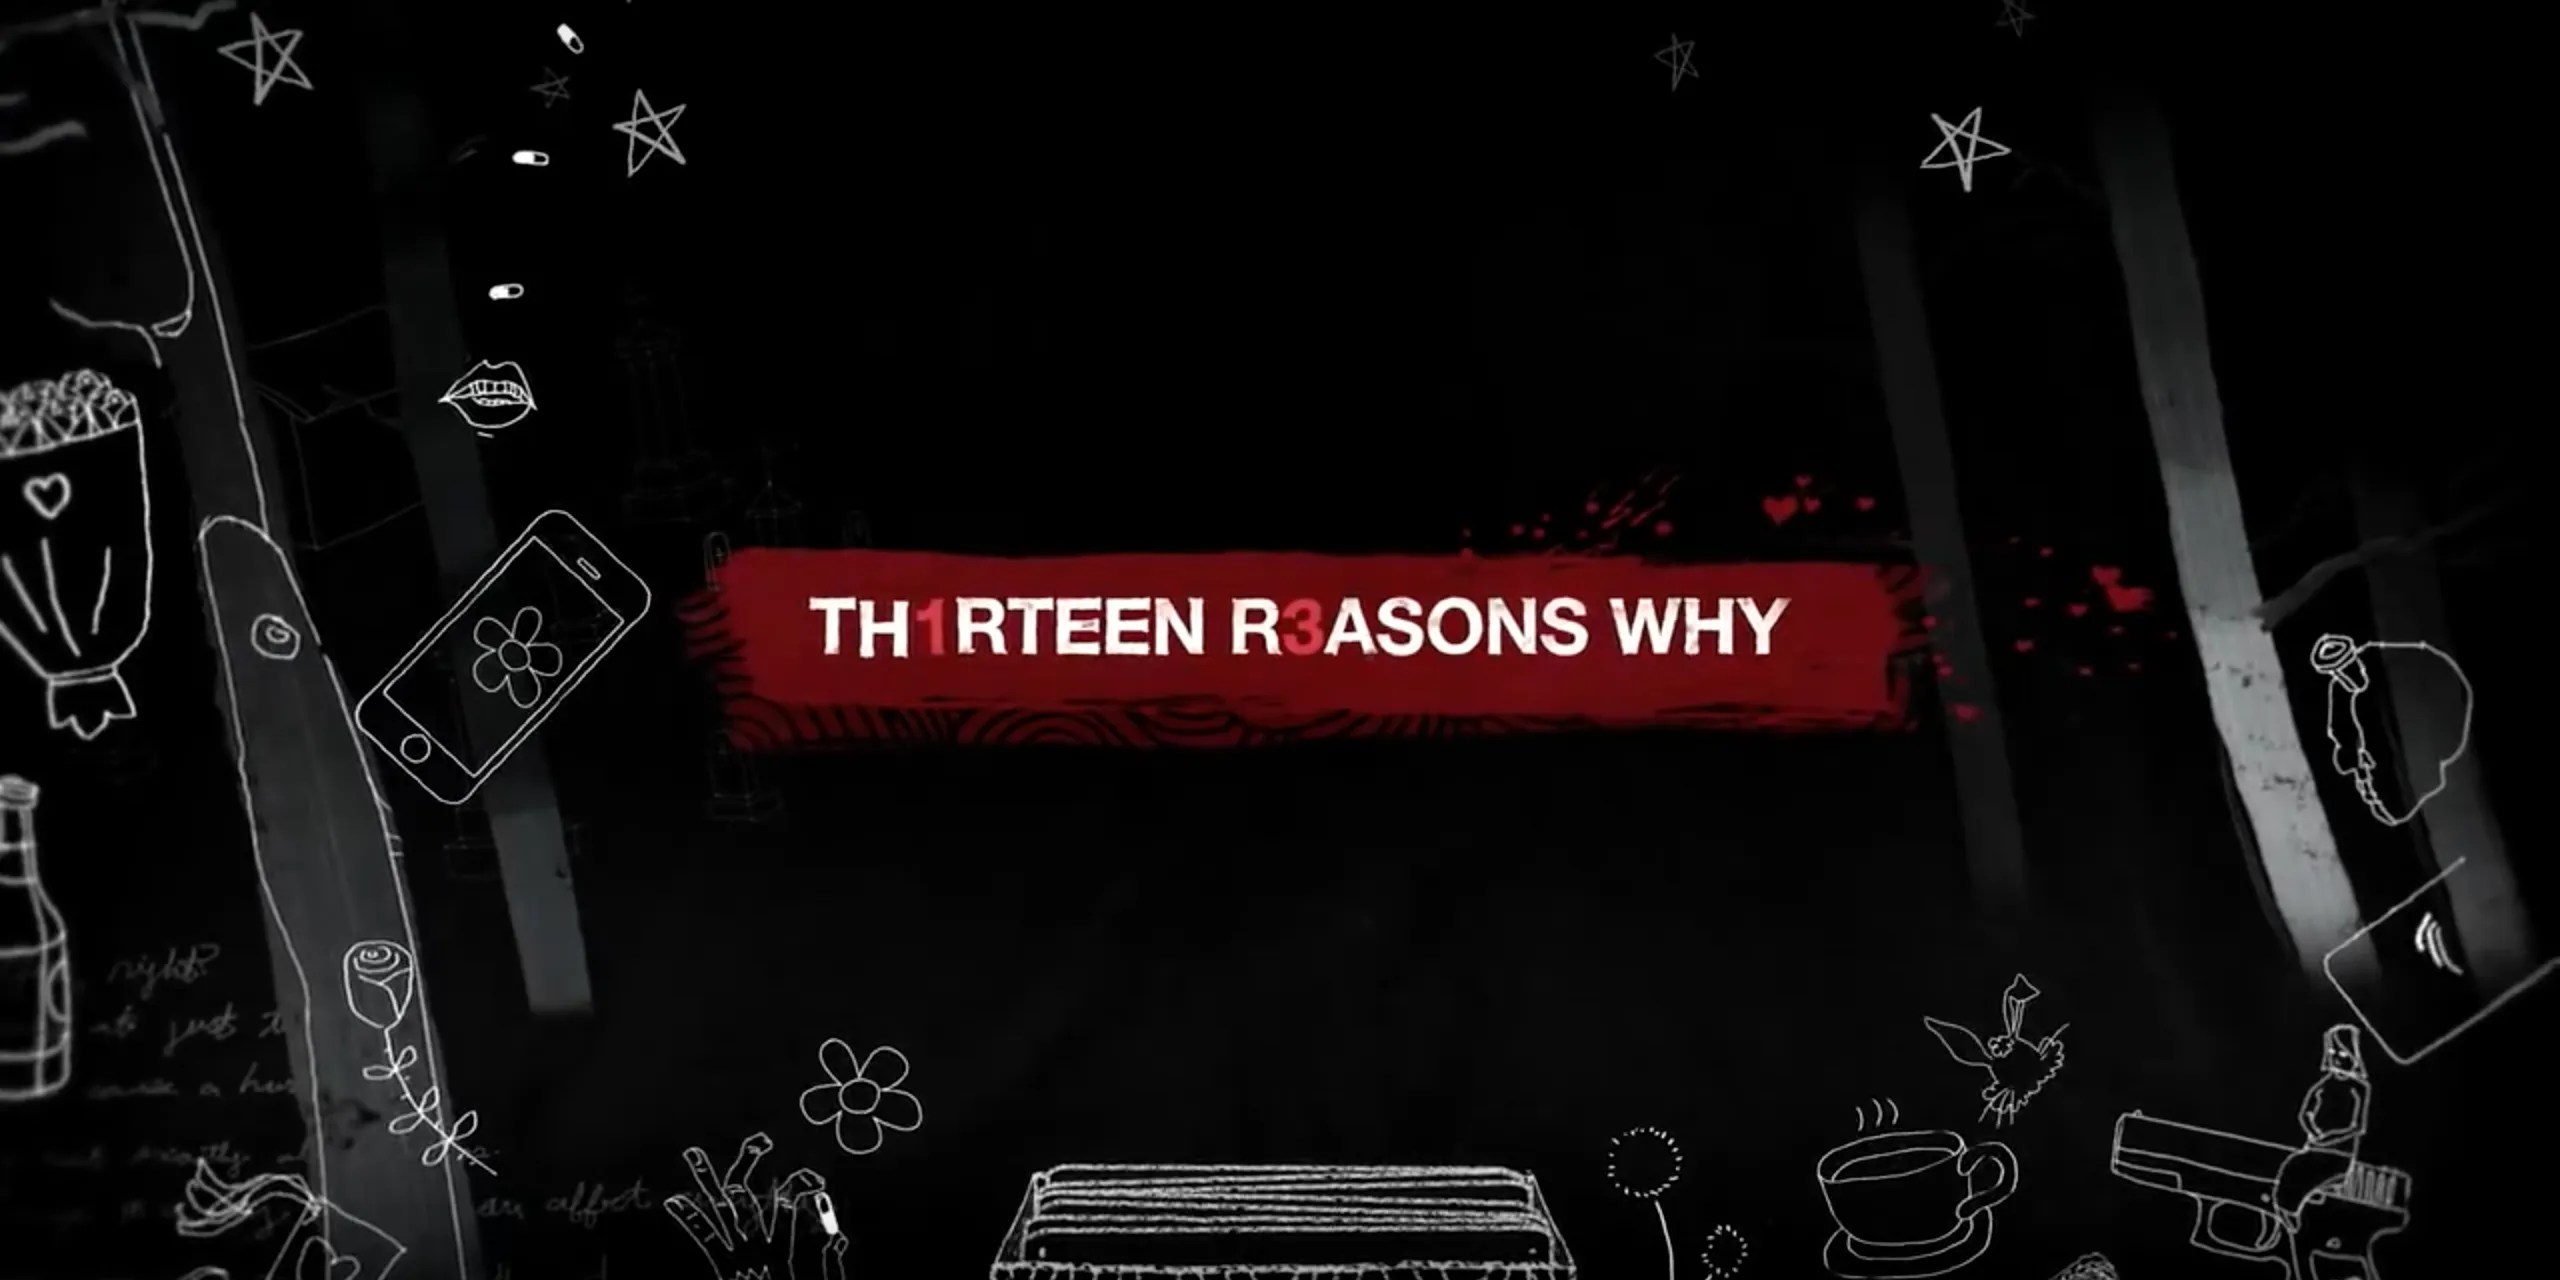 13 Reasons Why Garners Controversy Over Suicide